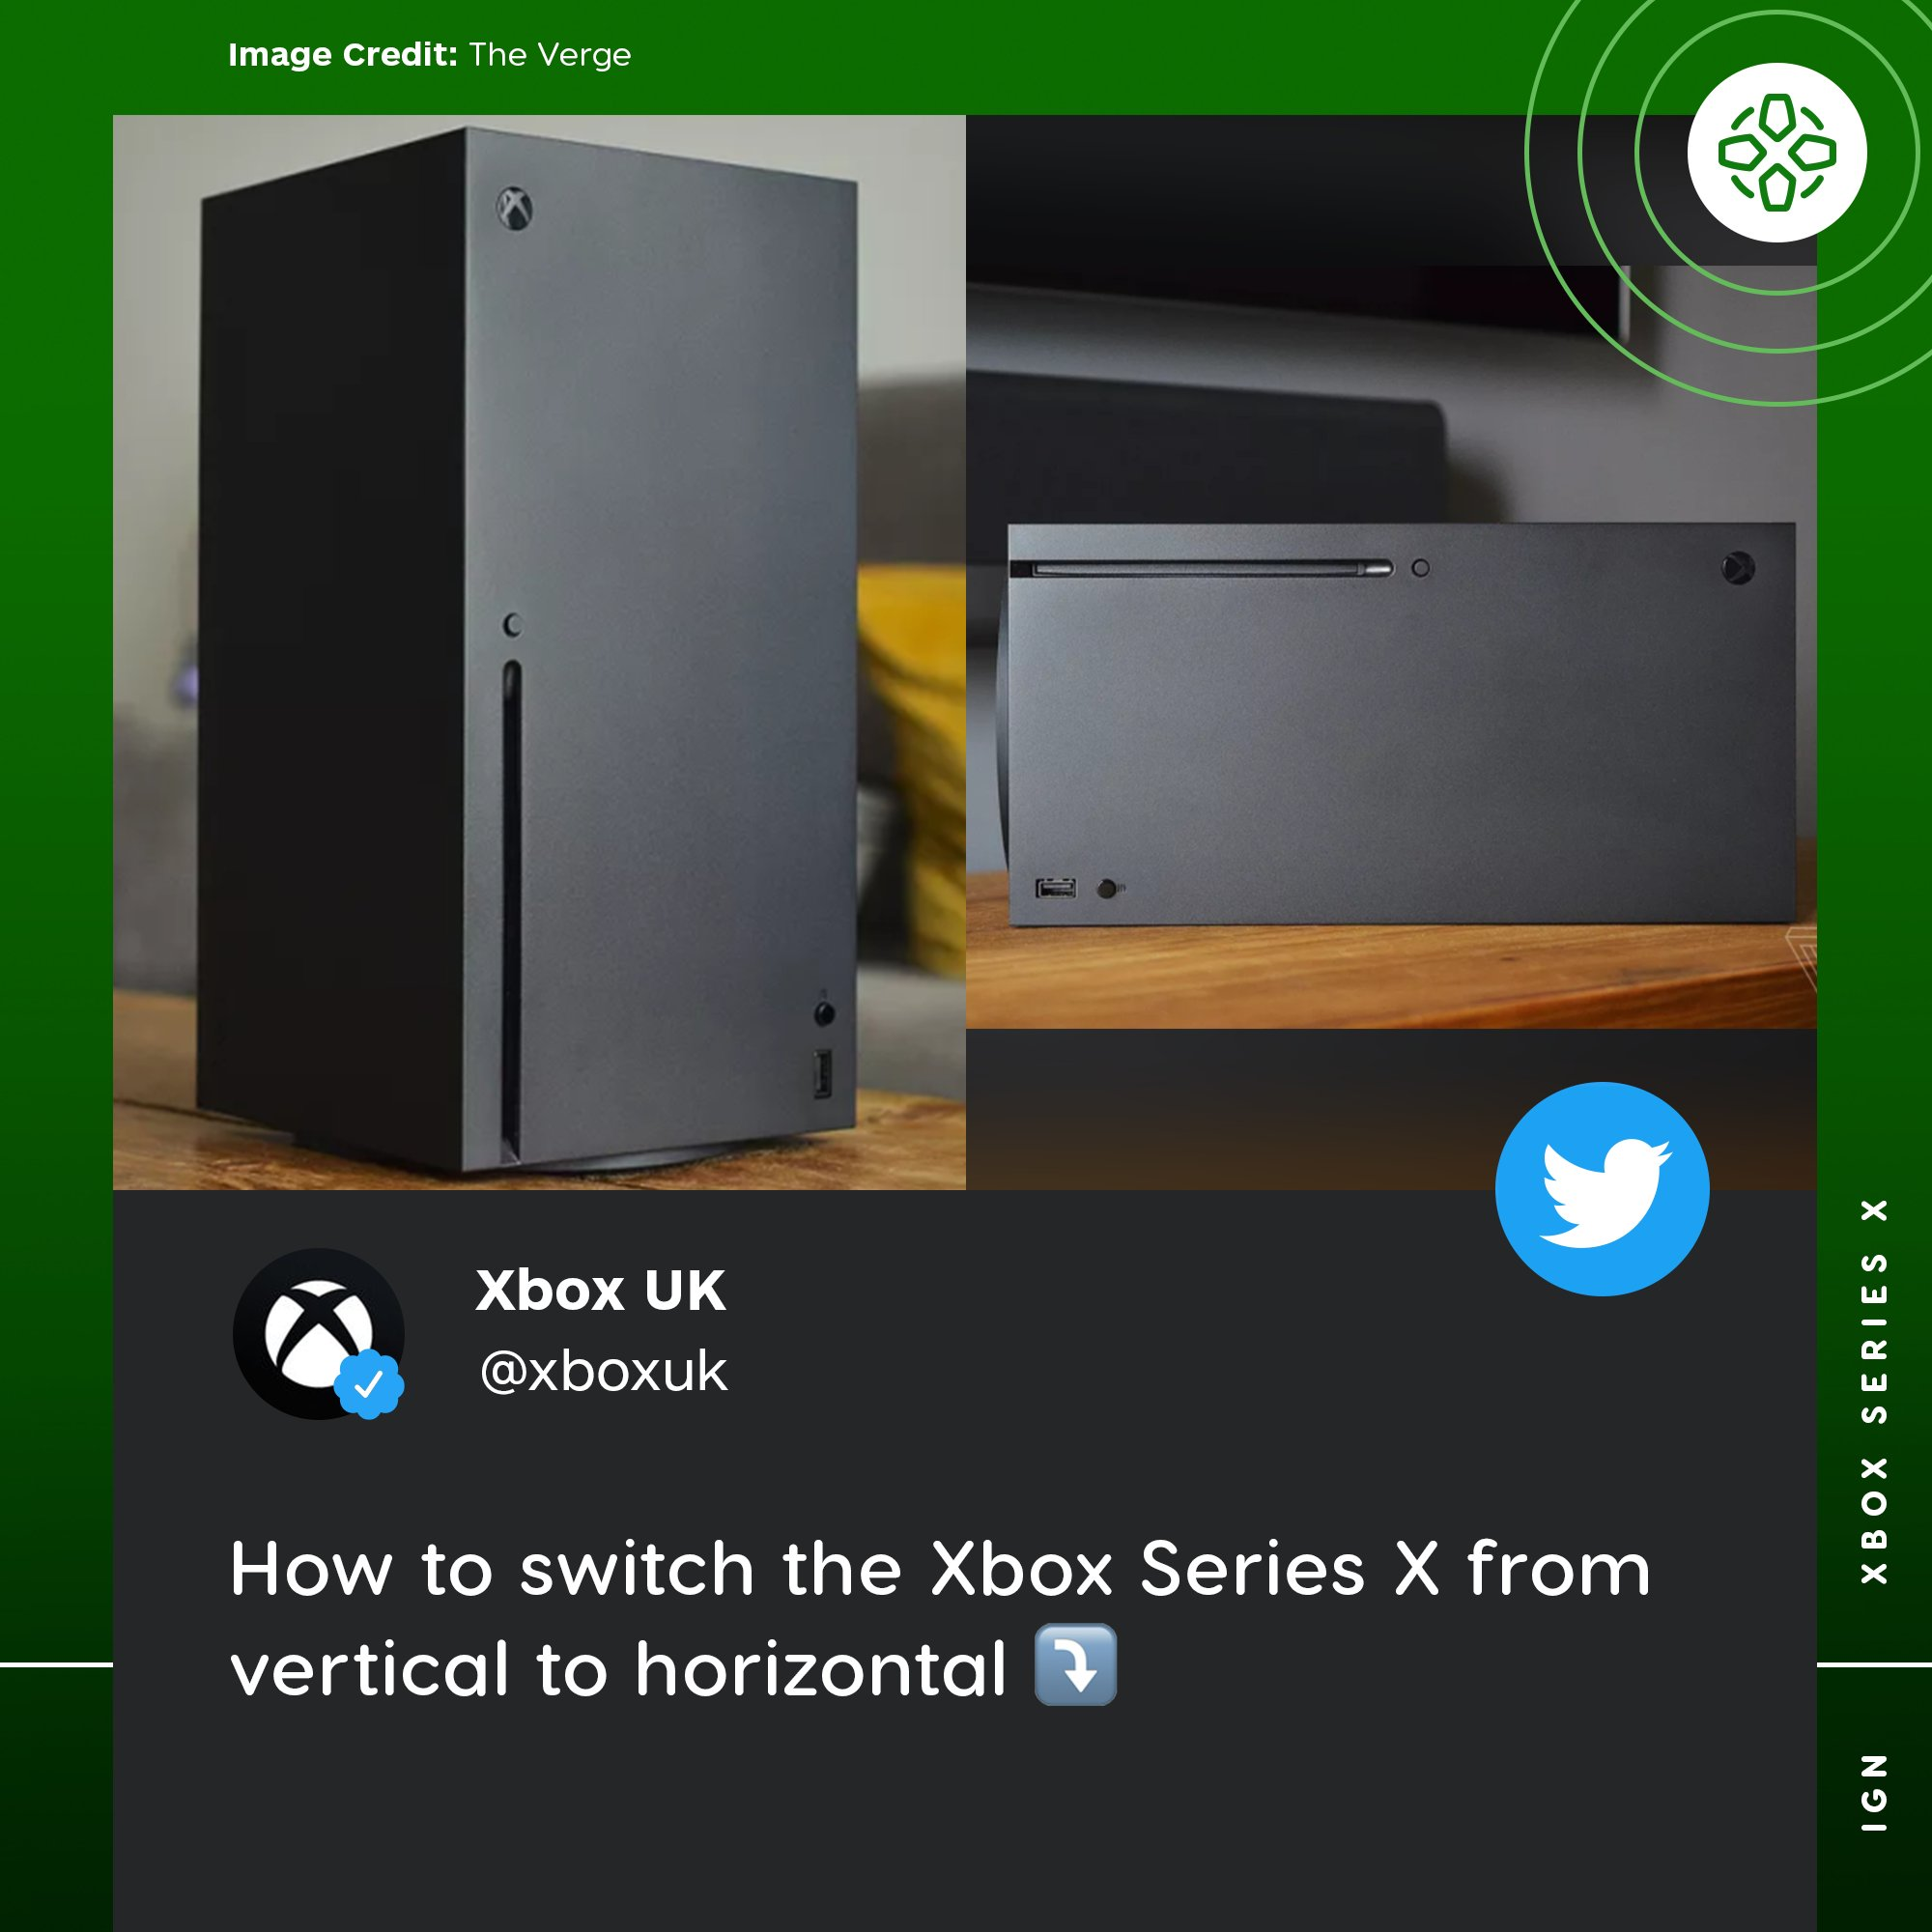 Ign On Twitter The Xbox Uk Twitter Account Took A Playful Jab At Ps5 S Slightly More Complicated Process To Go From Vertical To Horizontal Https T Co Rcggaahbbr Https T Co Ku3nxswxs7